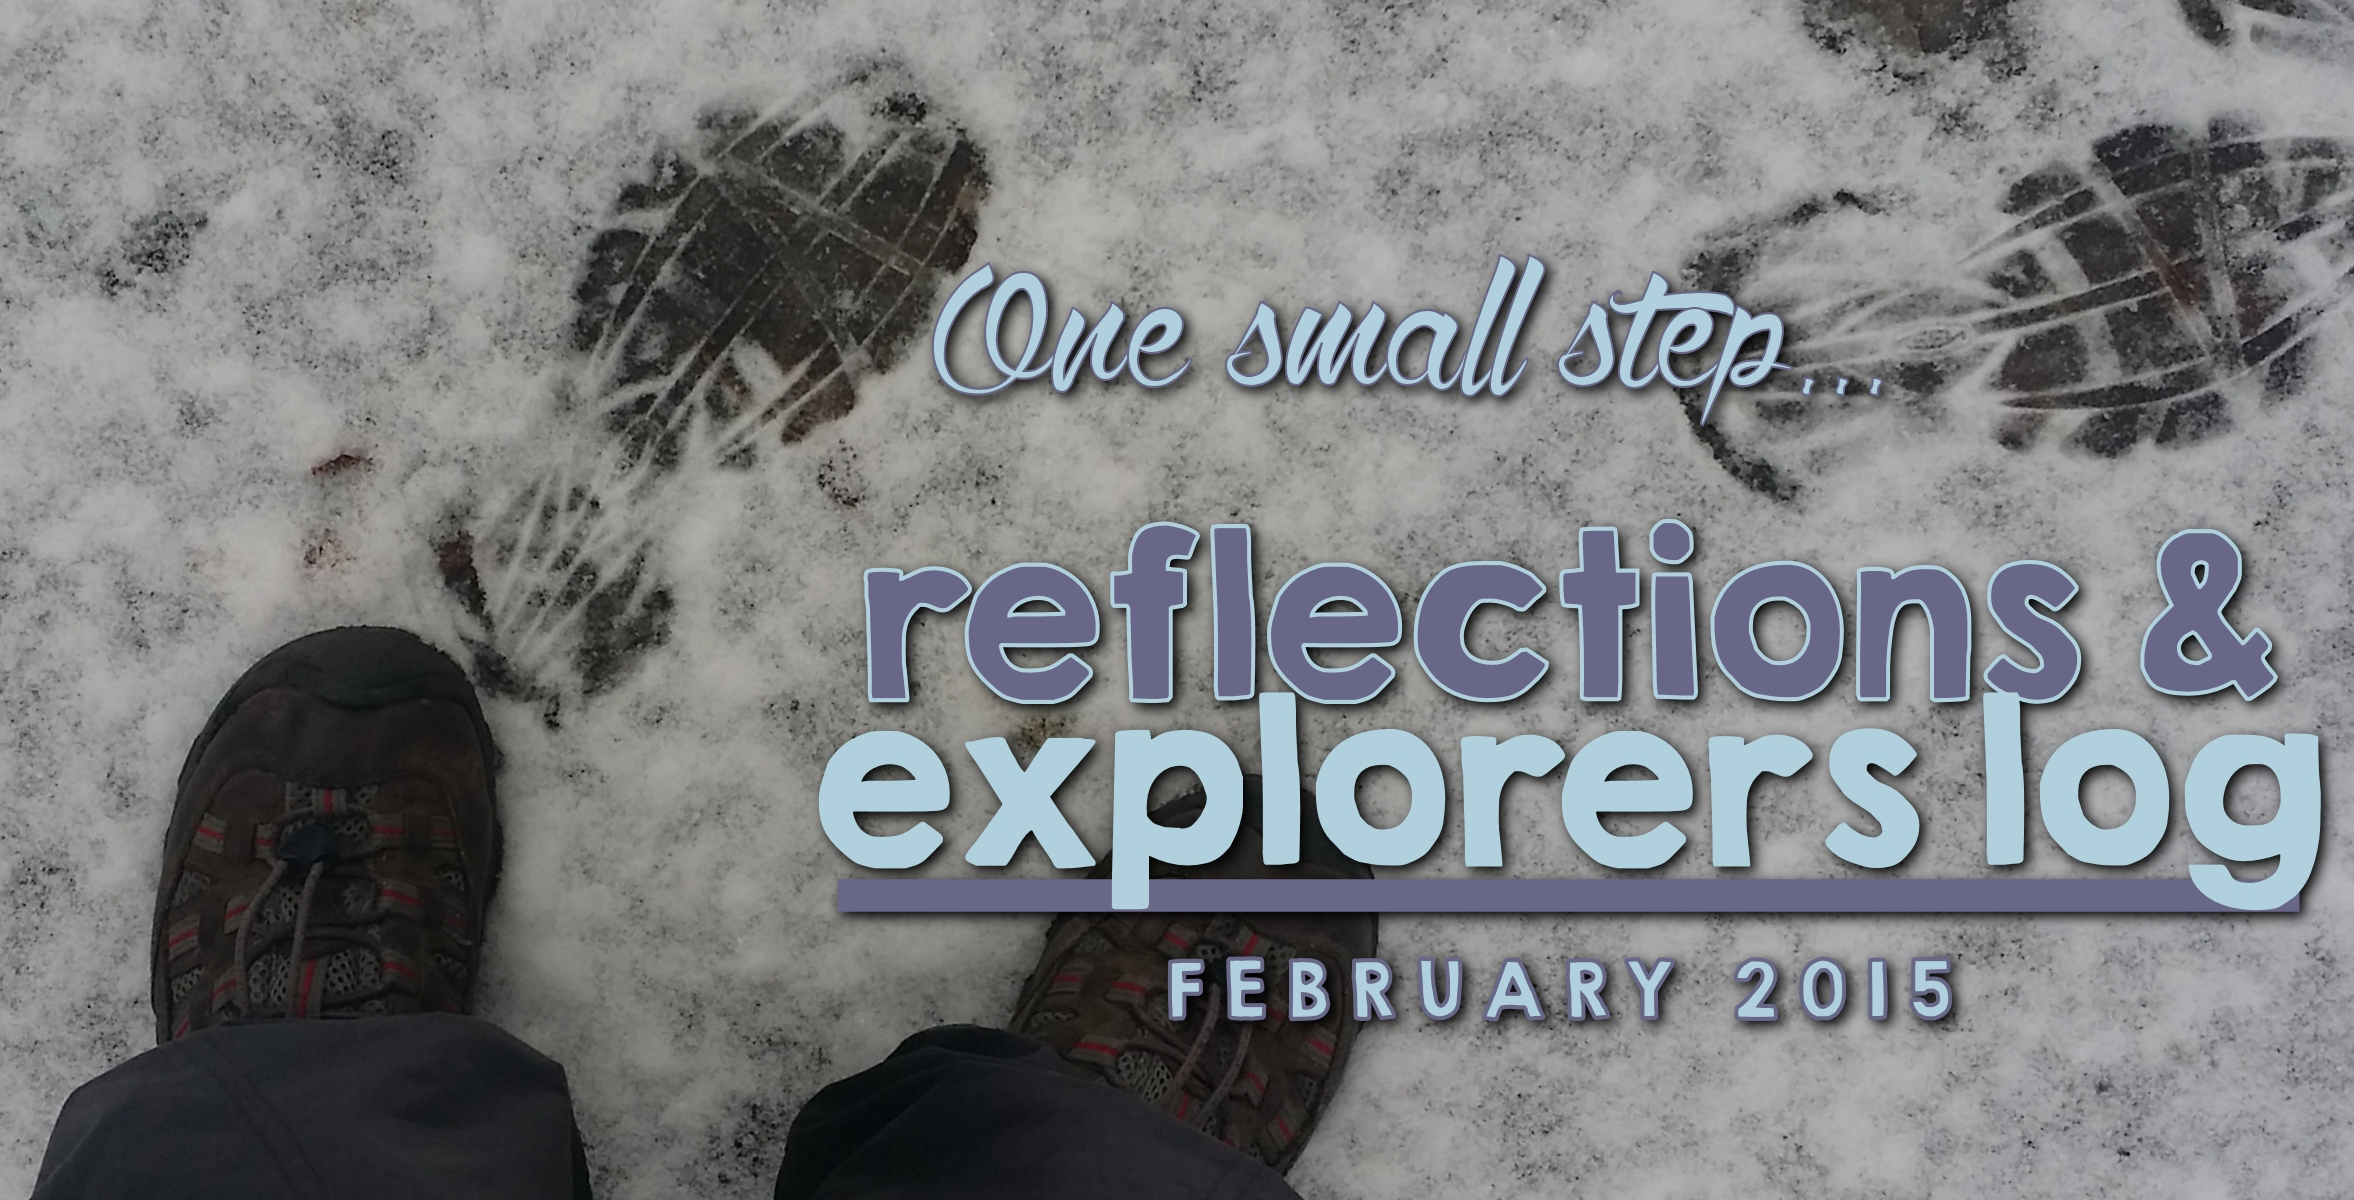 February Reflections & Explorers Log